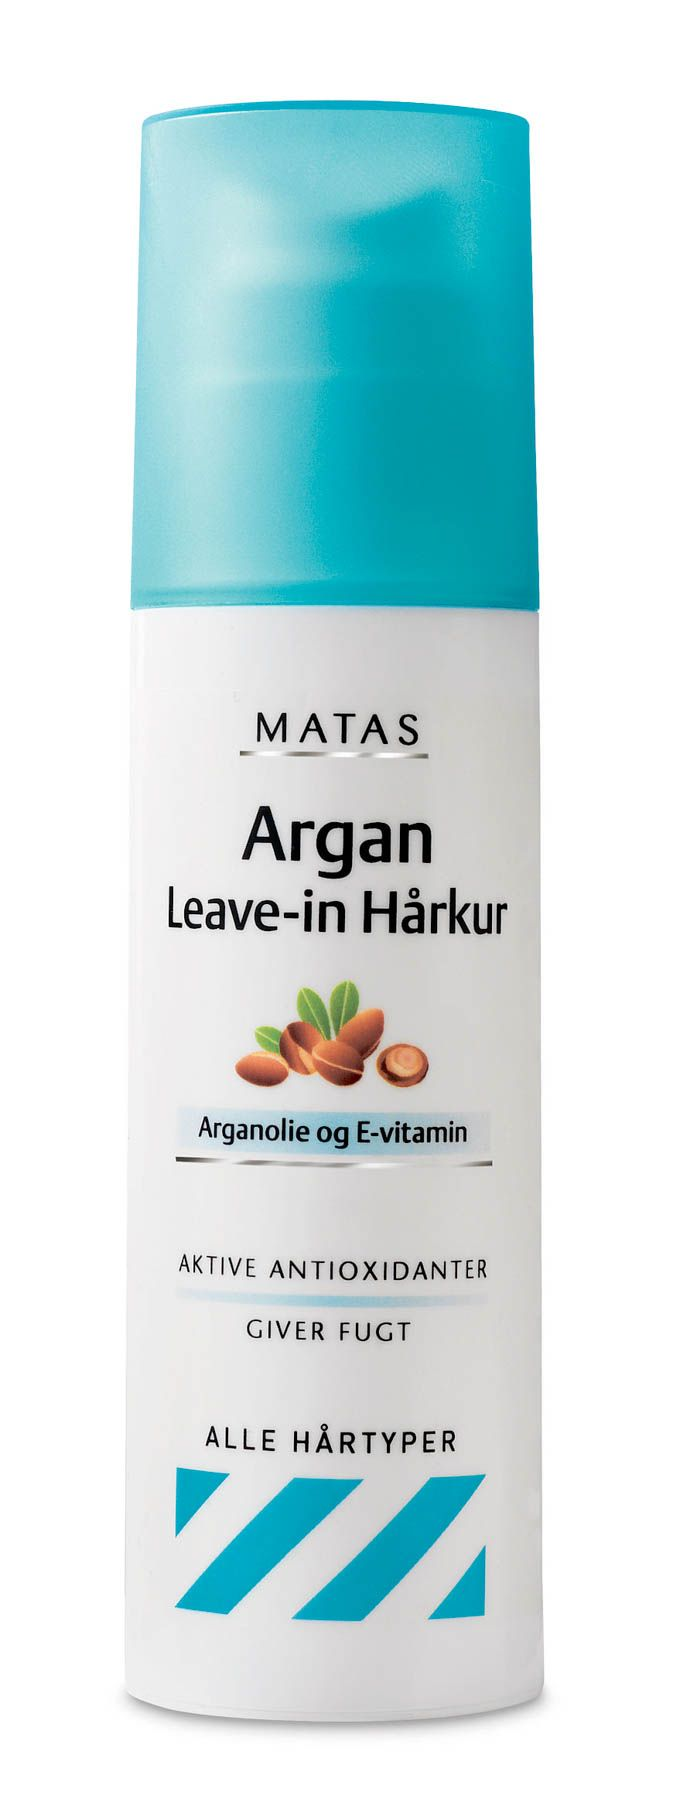 matas argan leave-in hårkur